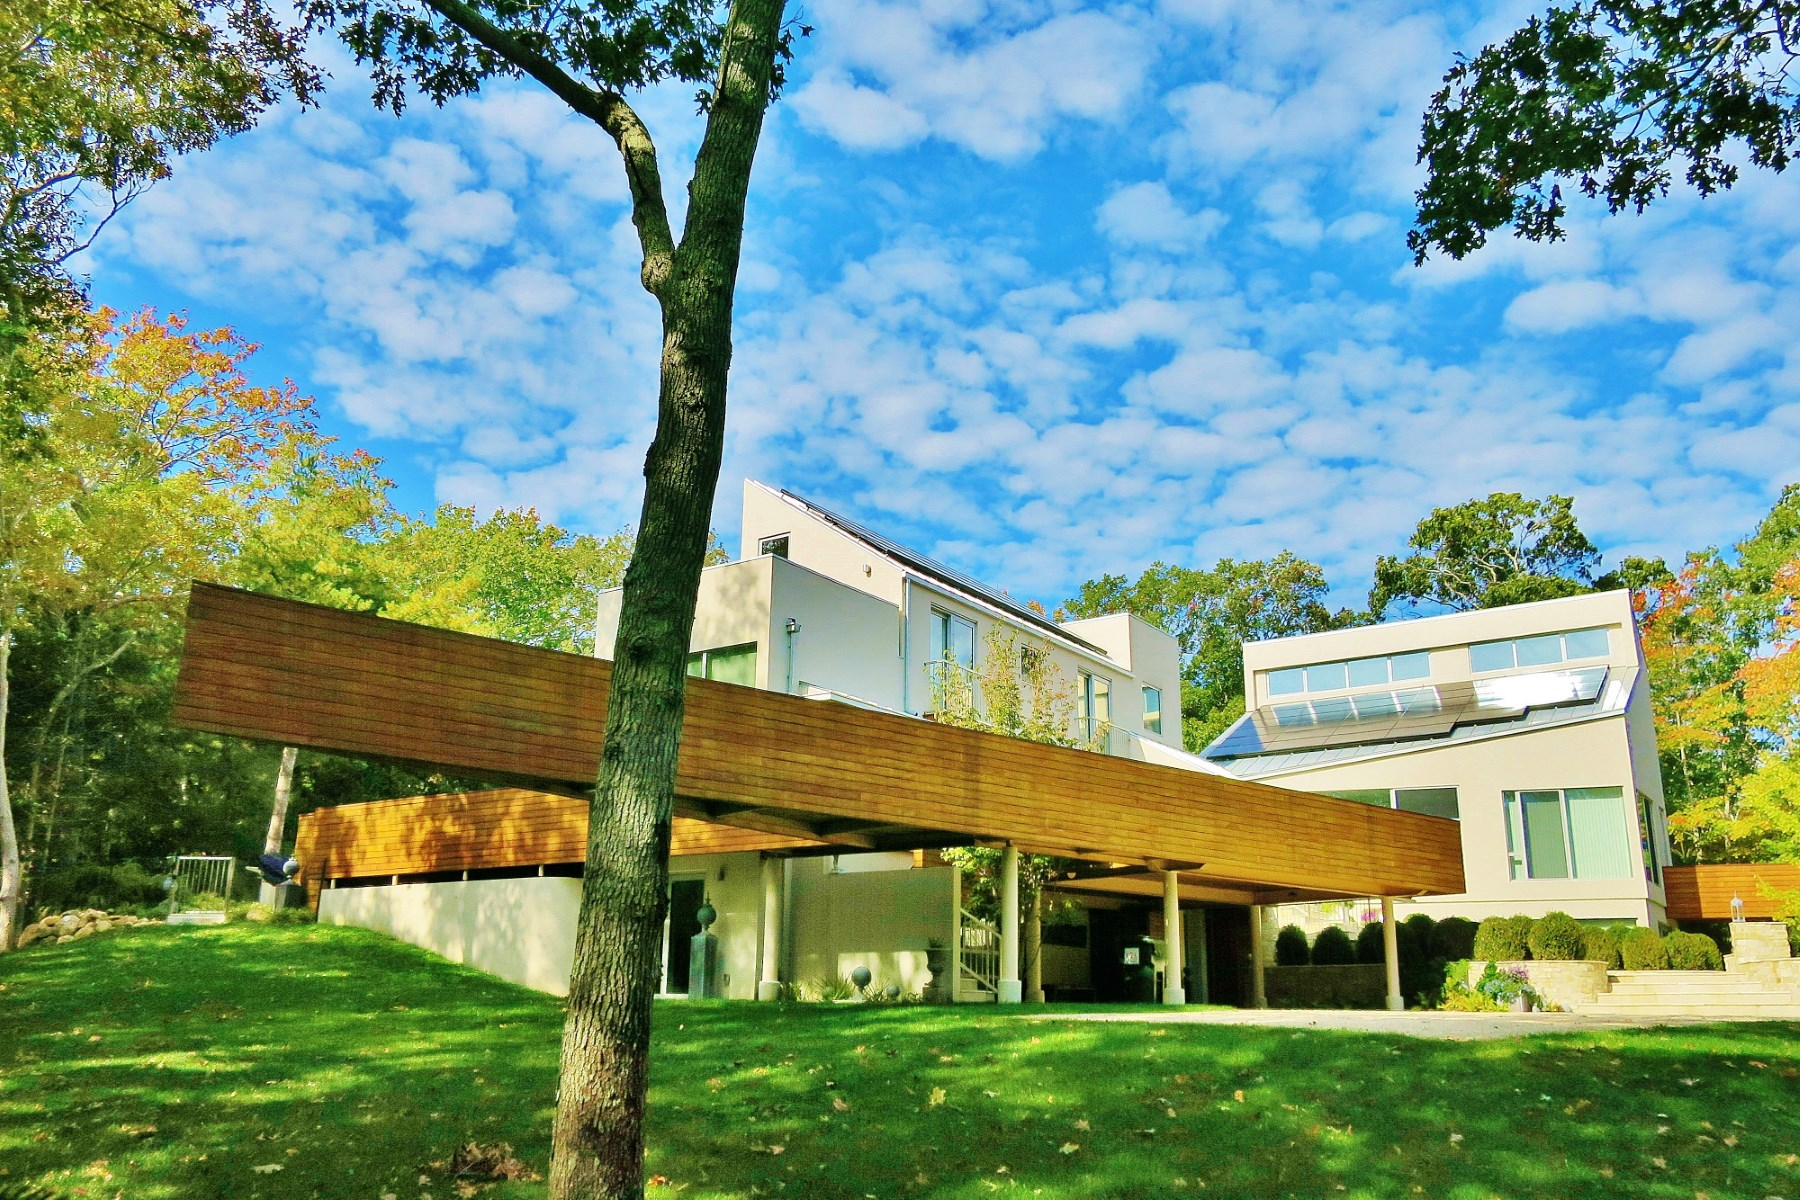 Casa Unifamiliar por un Alquiler en Sculptural Contemporary by the Bay 49 Landfall Road East Hampton, Nueva York, 11937 Estados Unidos